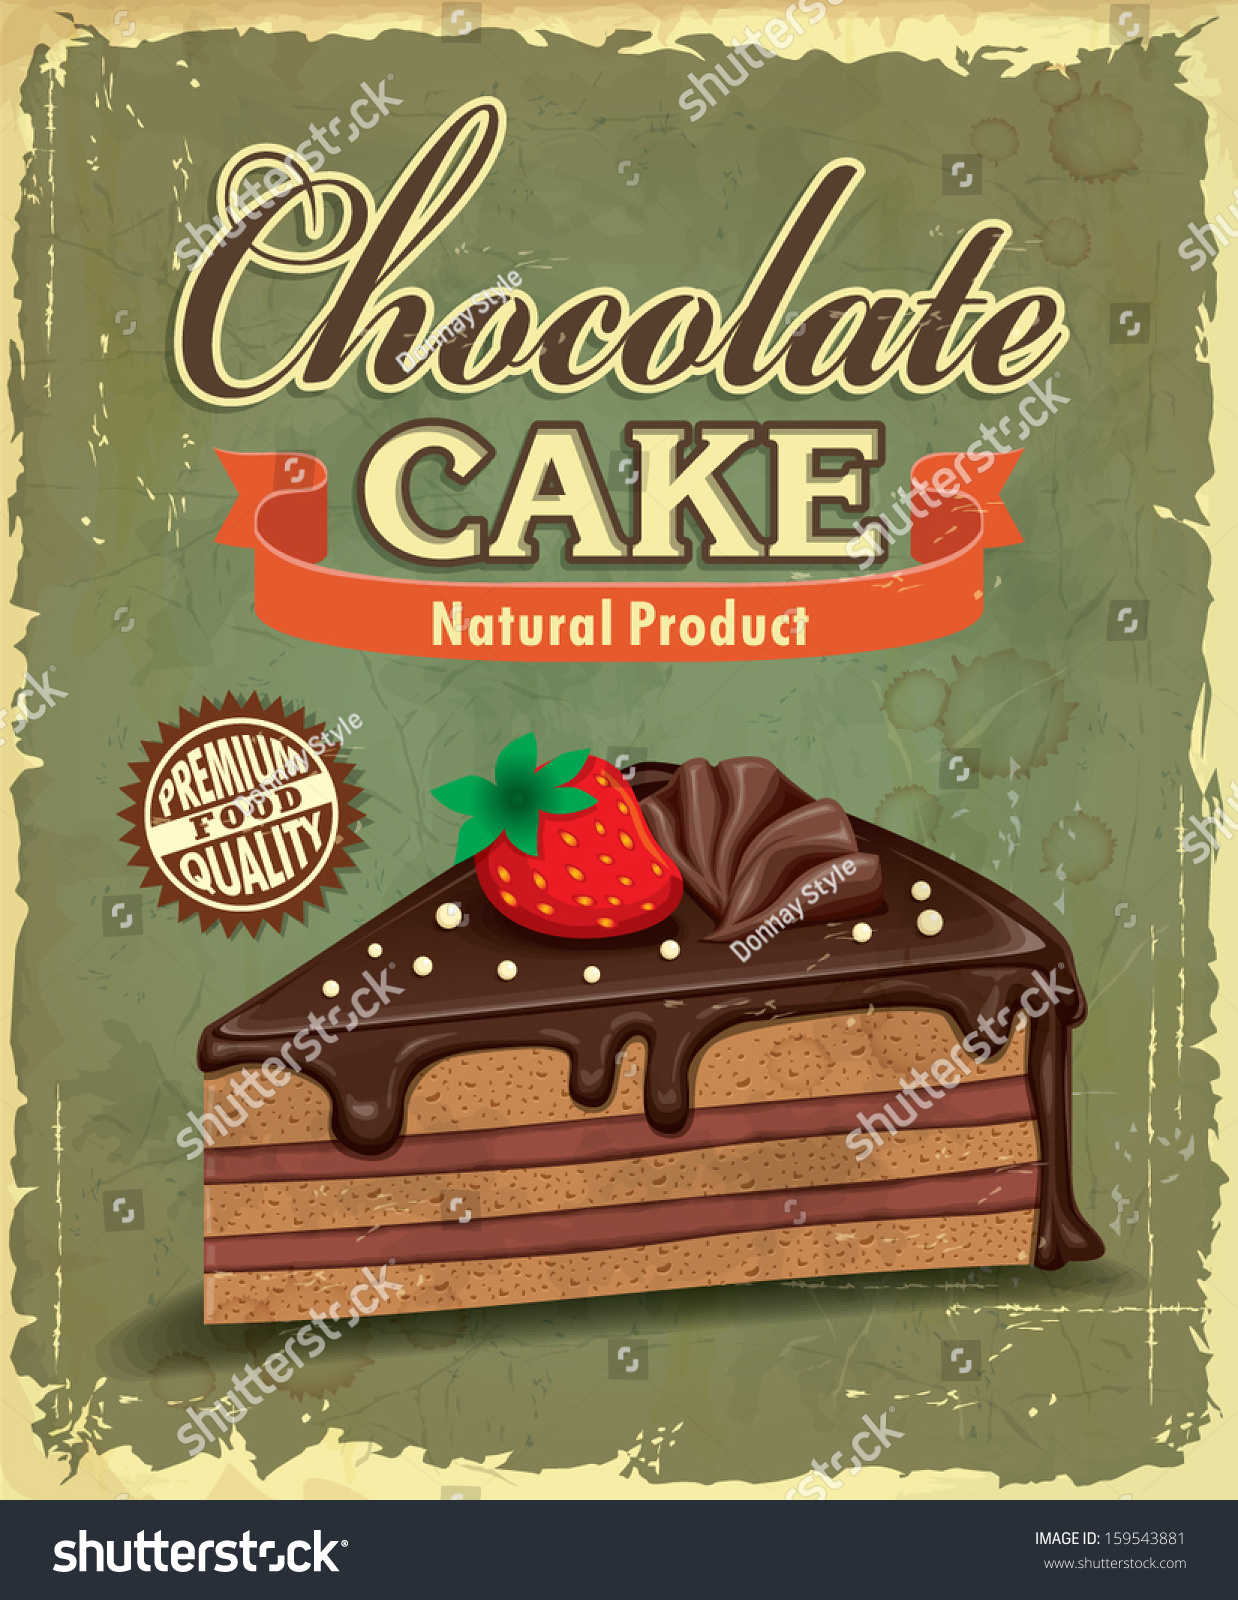 Vintage Chocolate Cake Poster Design Stock Vector ...